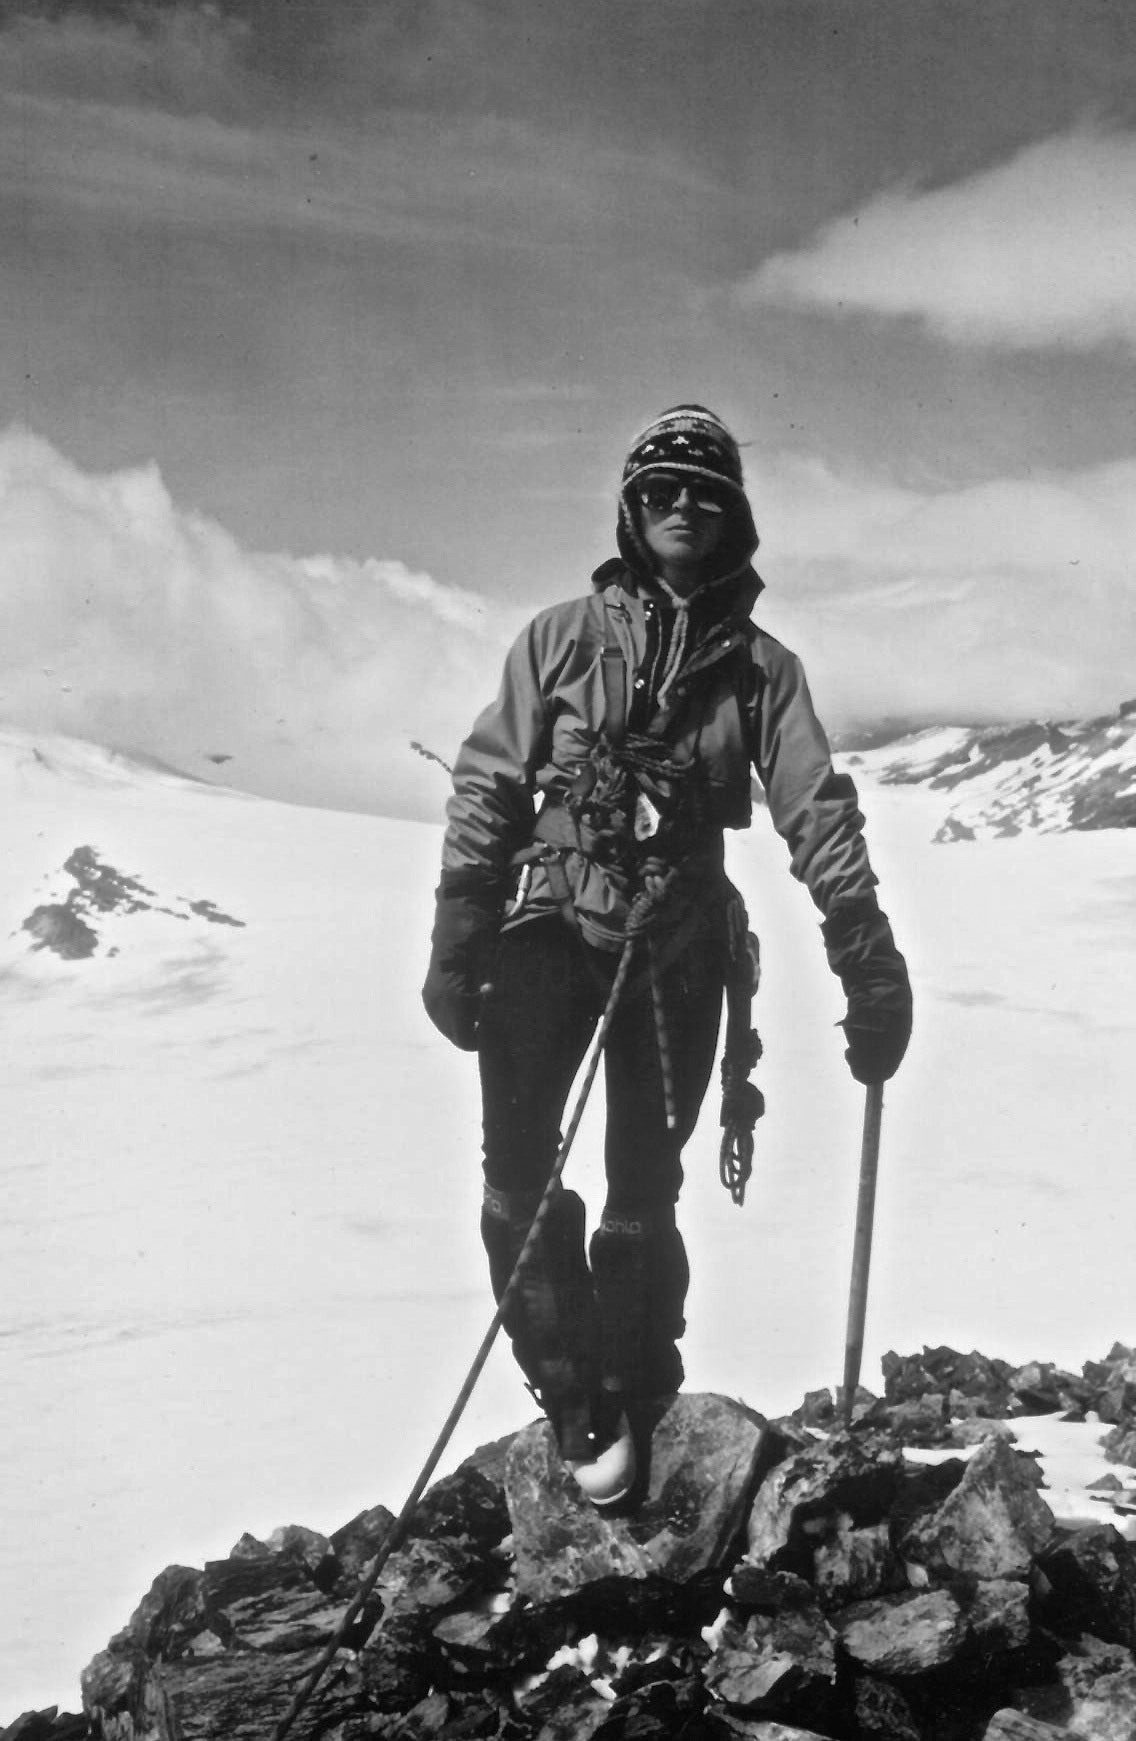 jan redford posing for a photo in snow gear on a hike on a mountain